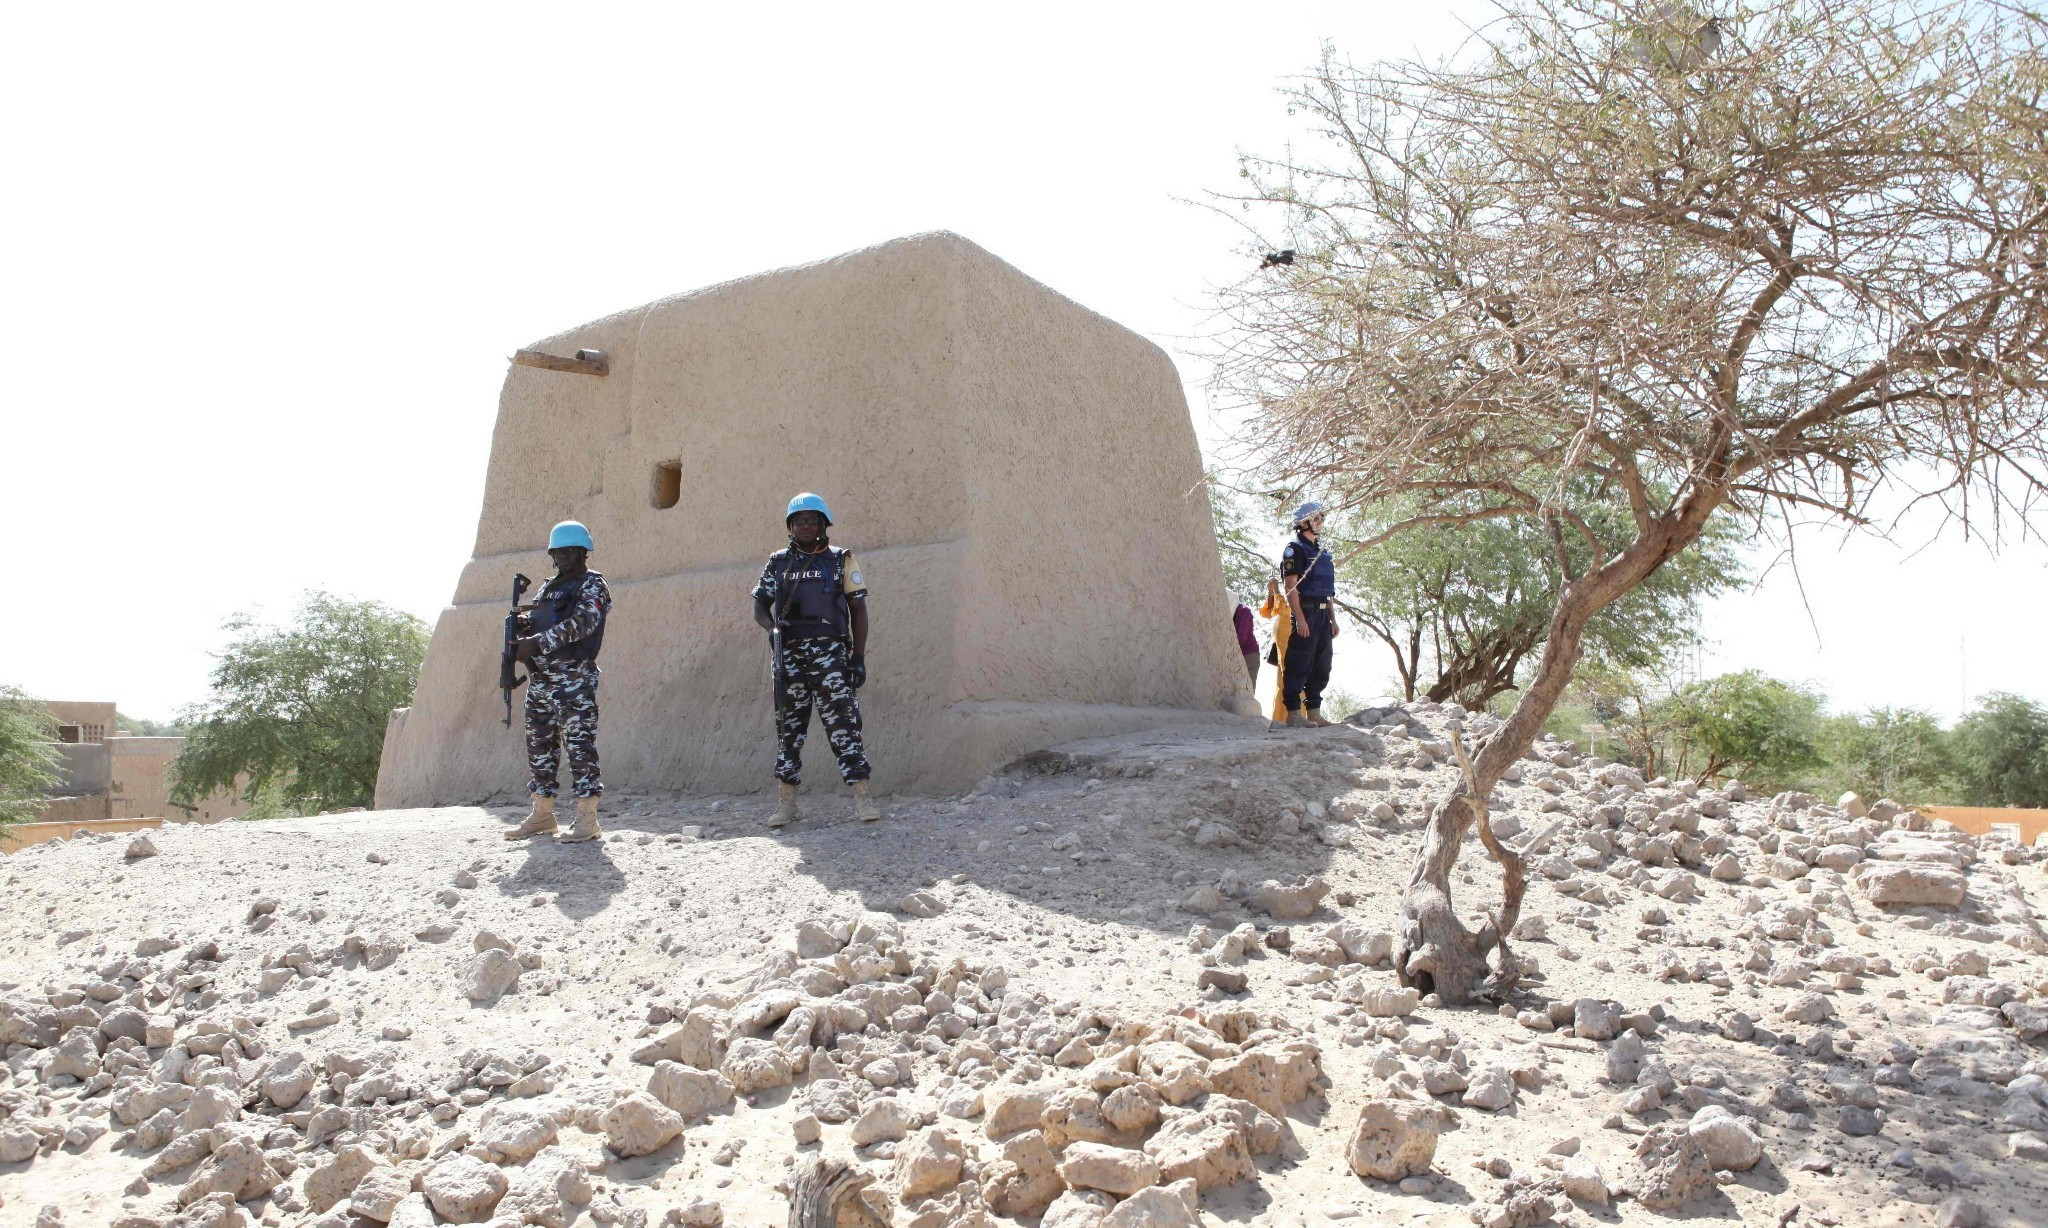 Islamic extremist's trial over Timbuktu cultural destruction to open at The Hague